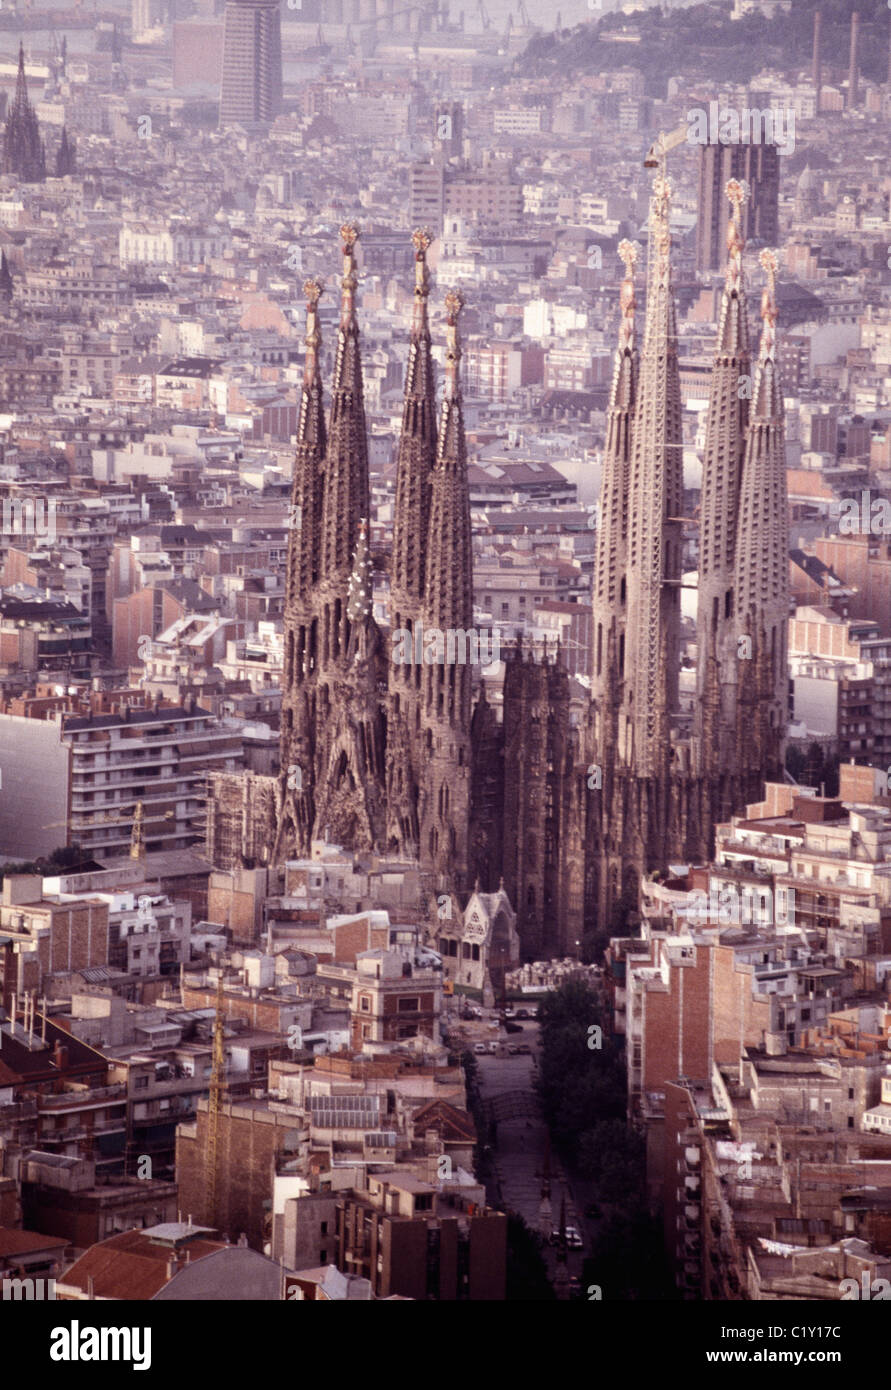 Aerial view of Sagrada Familia Cathedral in Barcelona - Stock Image